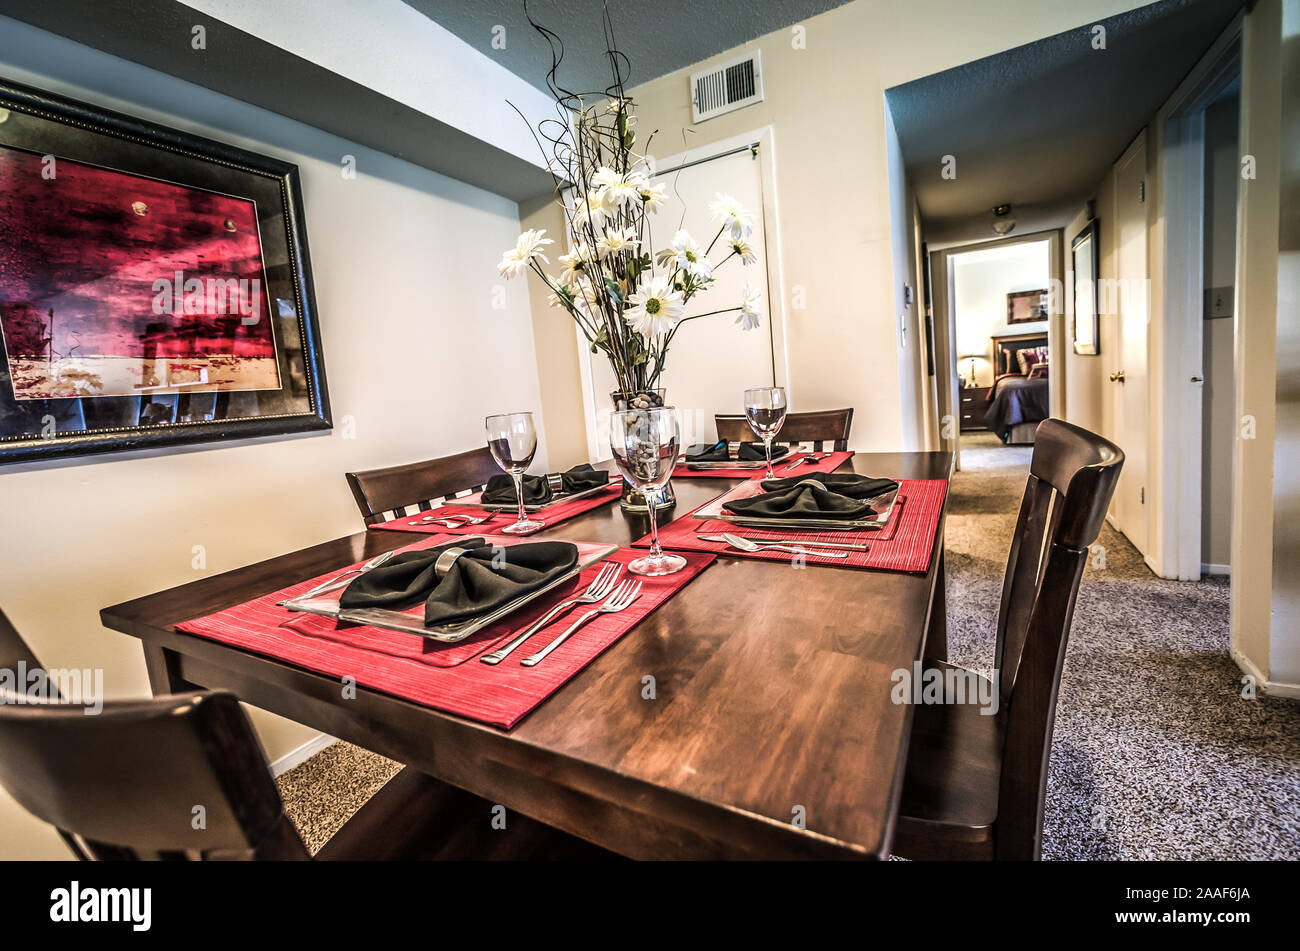 Red placemats complement the artwork in a dining room at Four Seasons apartments in Mobile, Alabama. Stock Photo